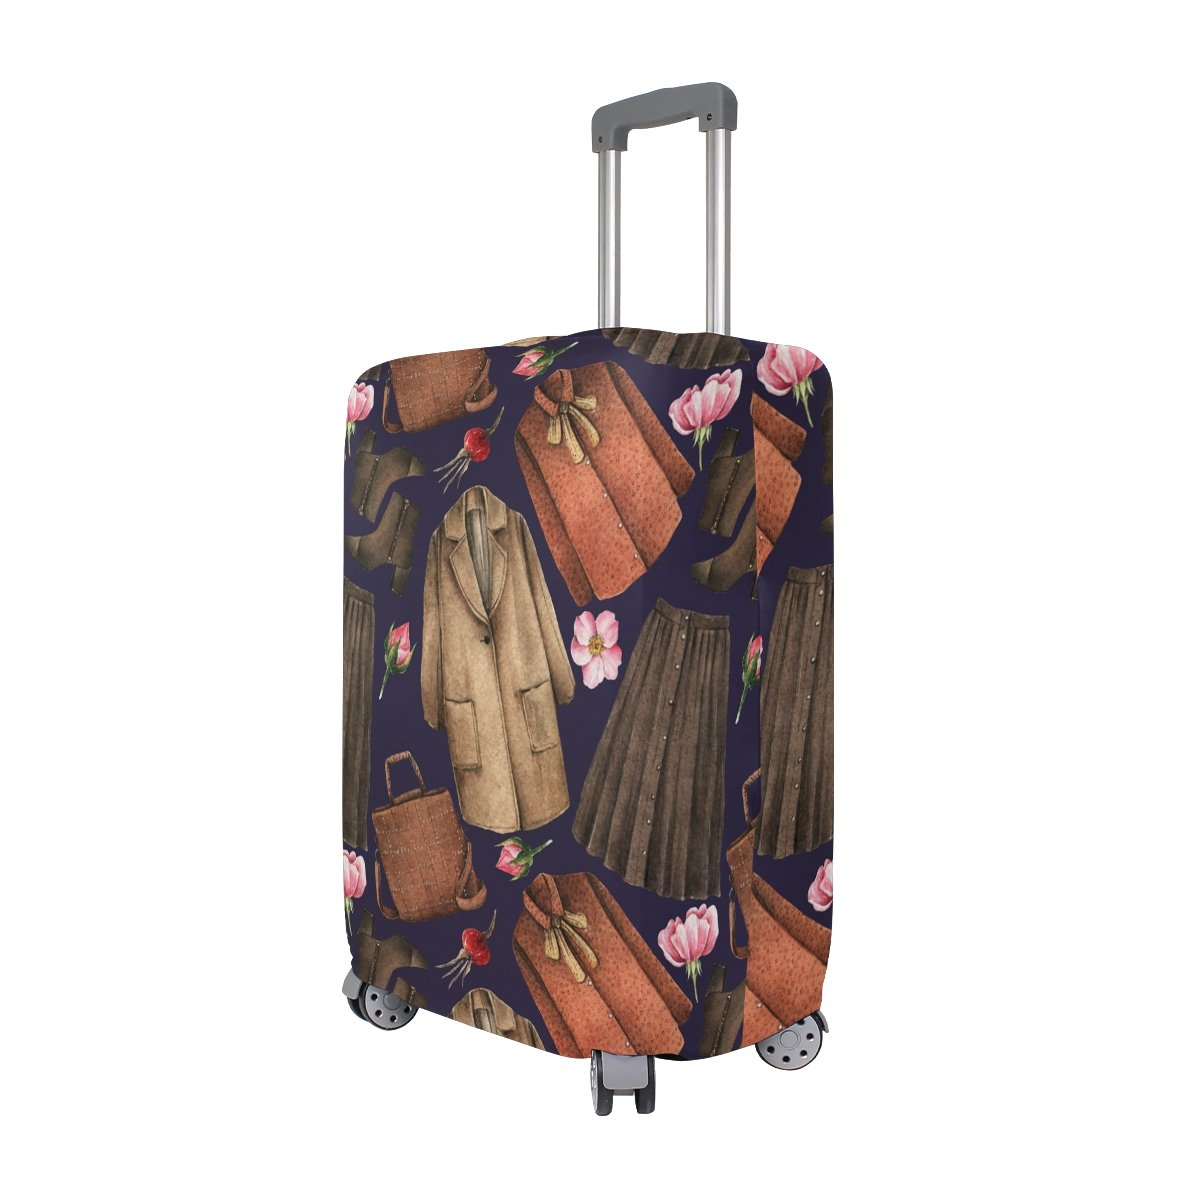 Elastic Travel Luggage Cover Watercolor Coat Skirt Suitcase Protector for 18-20 Inch Luggage by My Little Nest (Image #2)